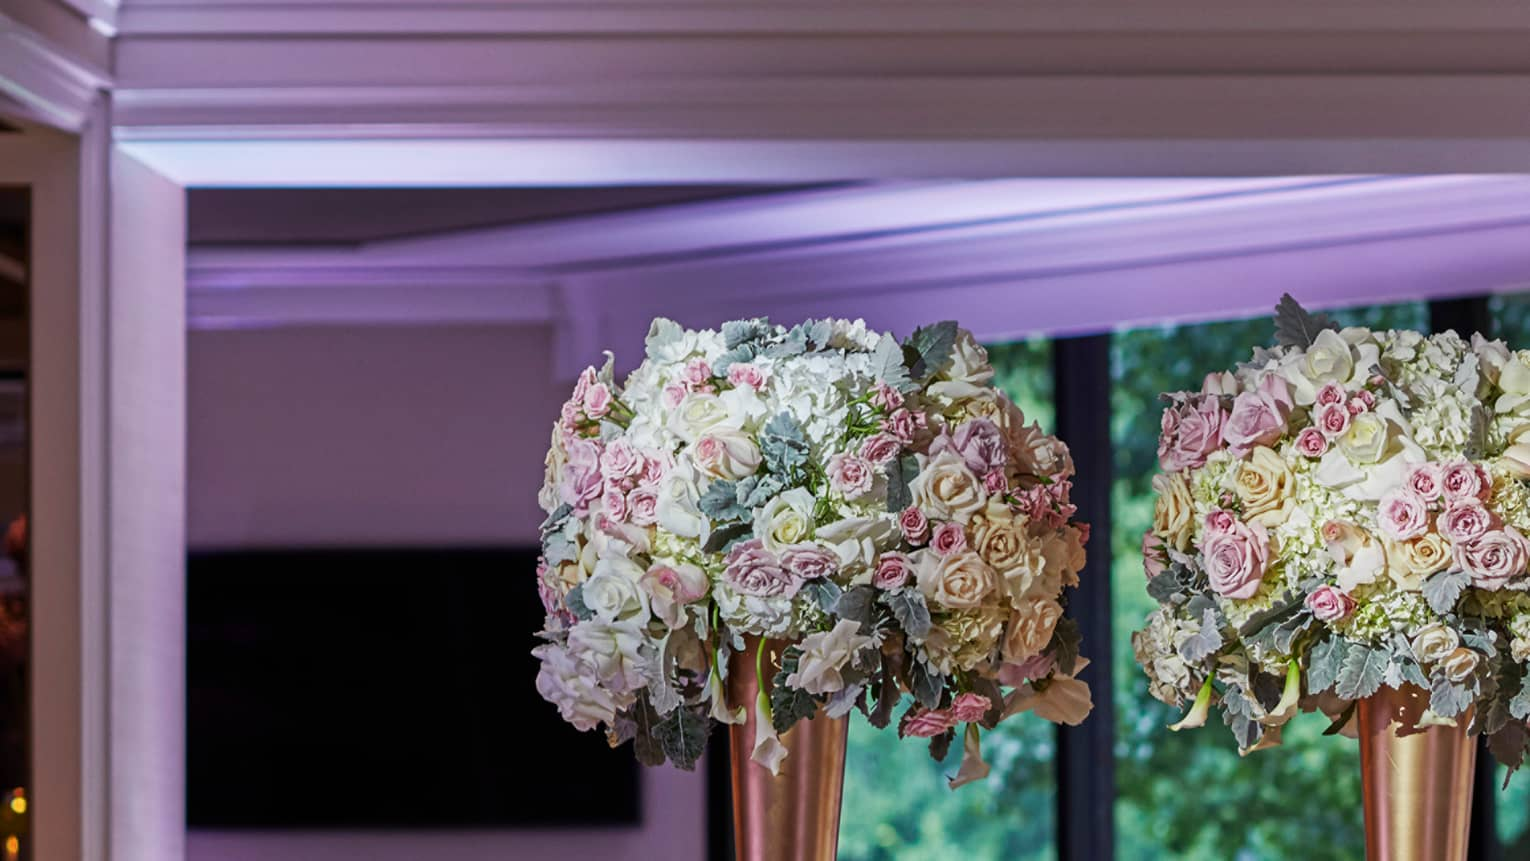 Four tall floral centrepieces in rose gold vases, candles on long wedding banquet table